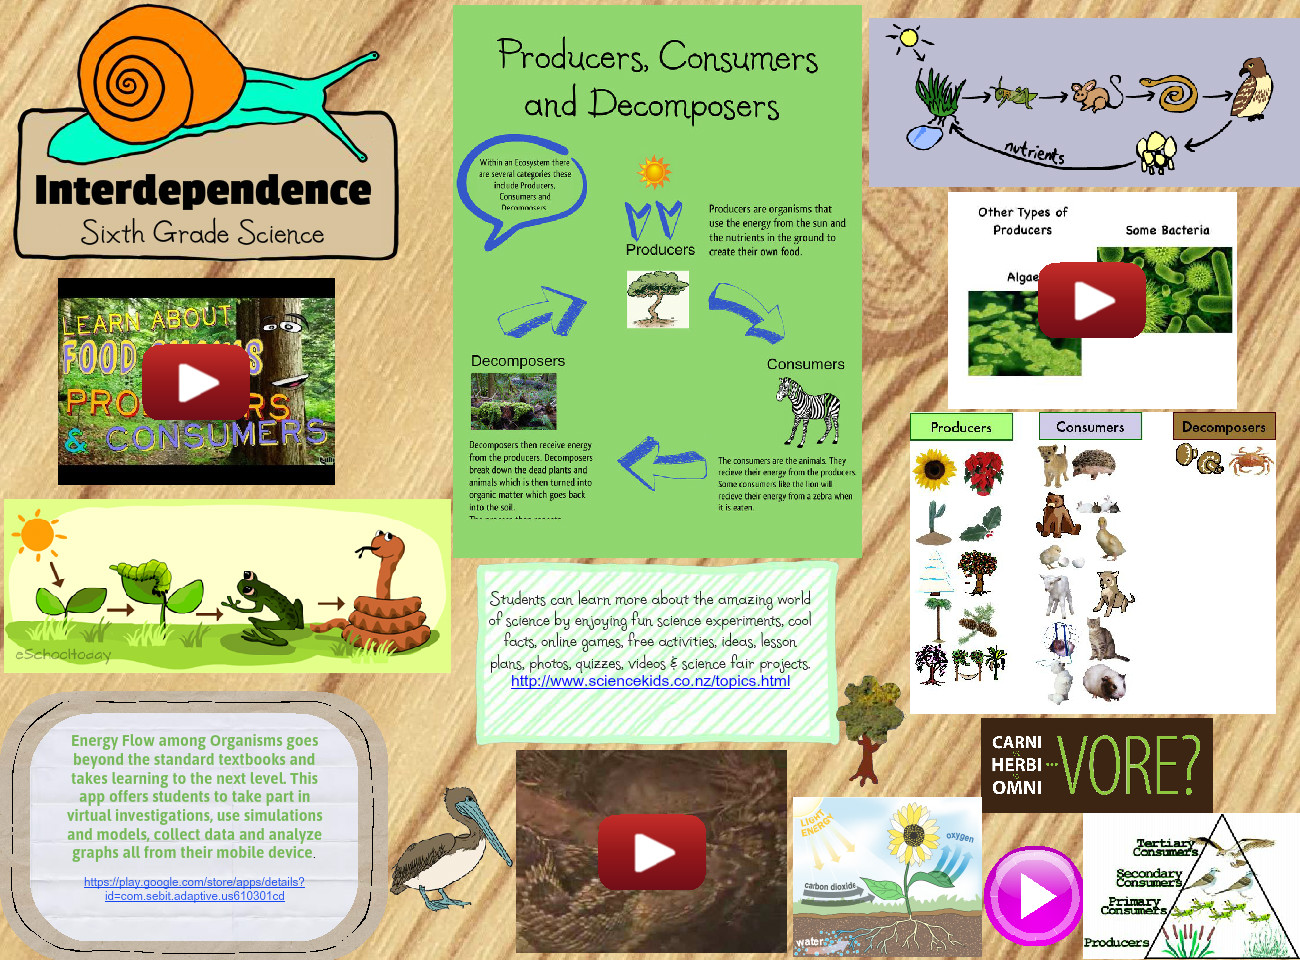 Interdependence: Consumers, Producers, Decomposers